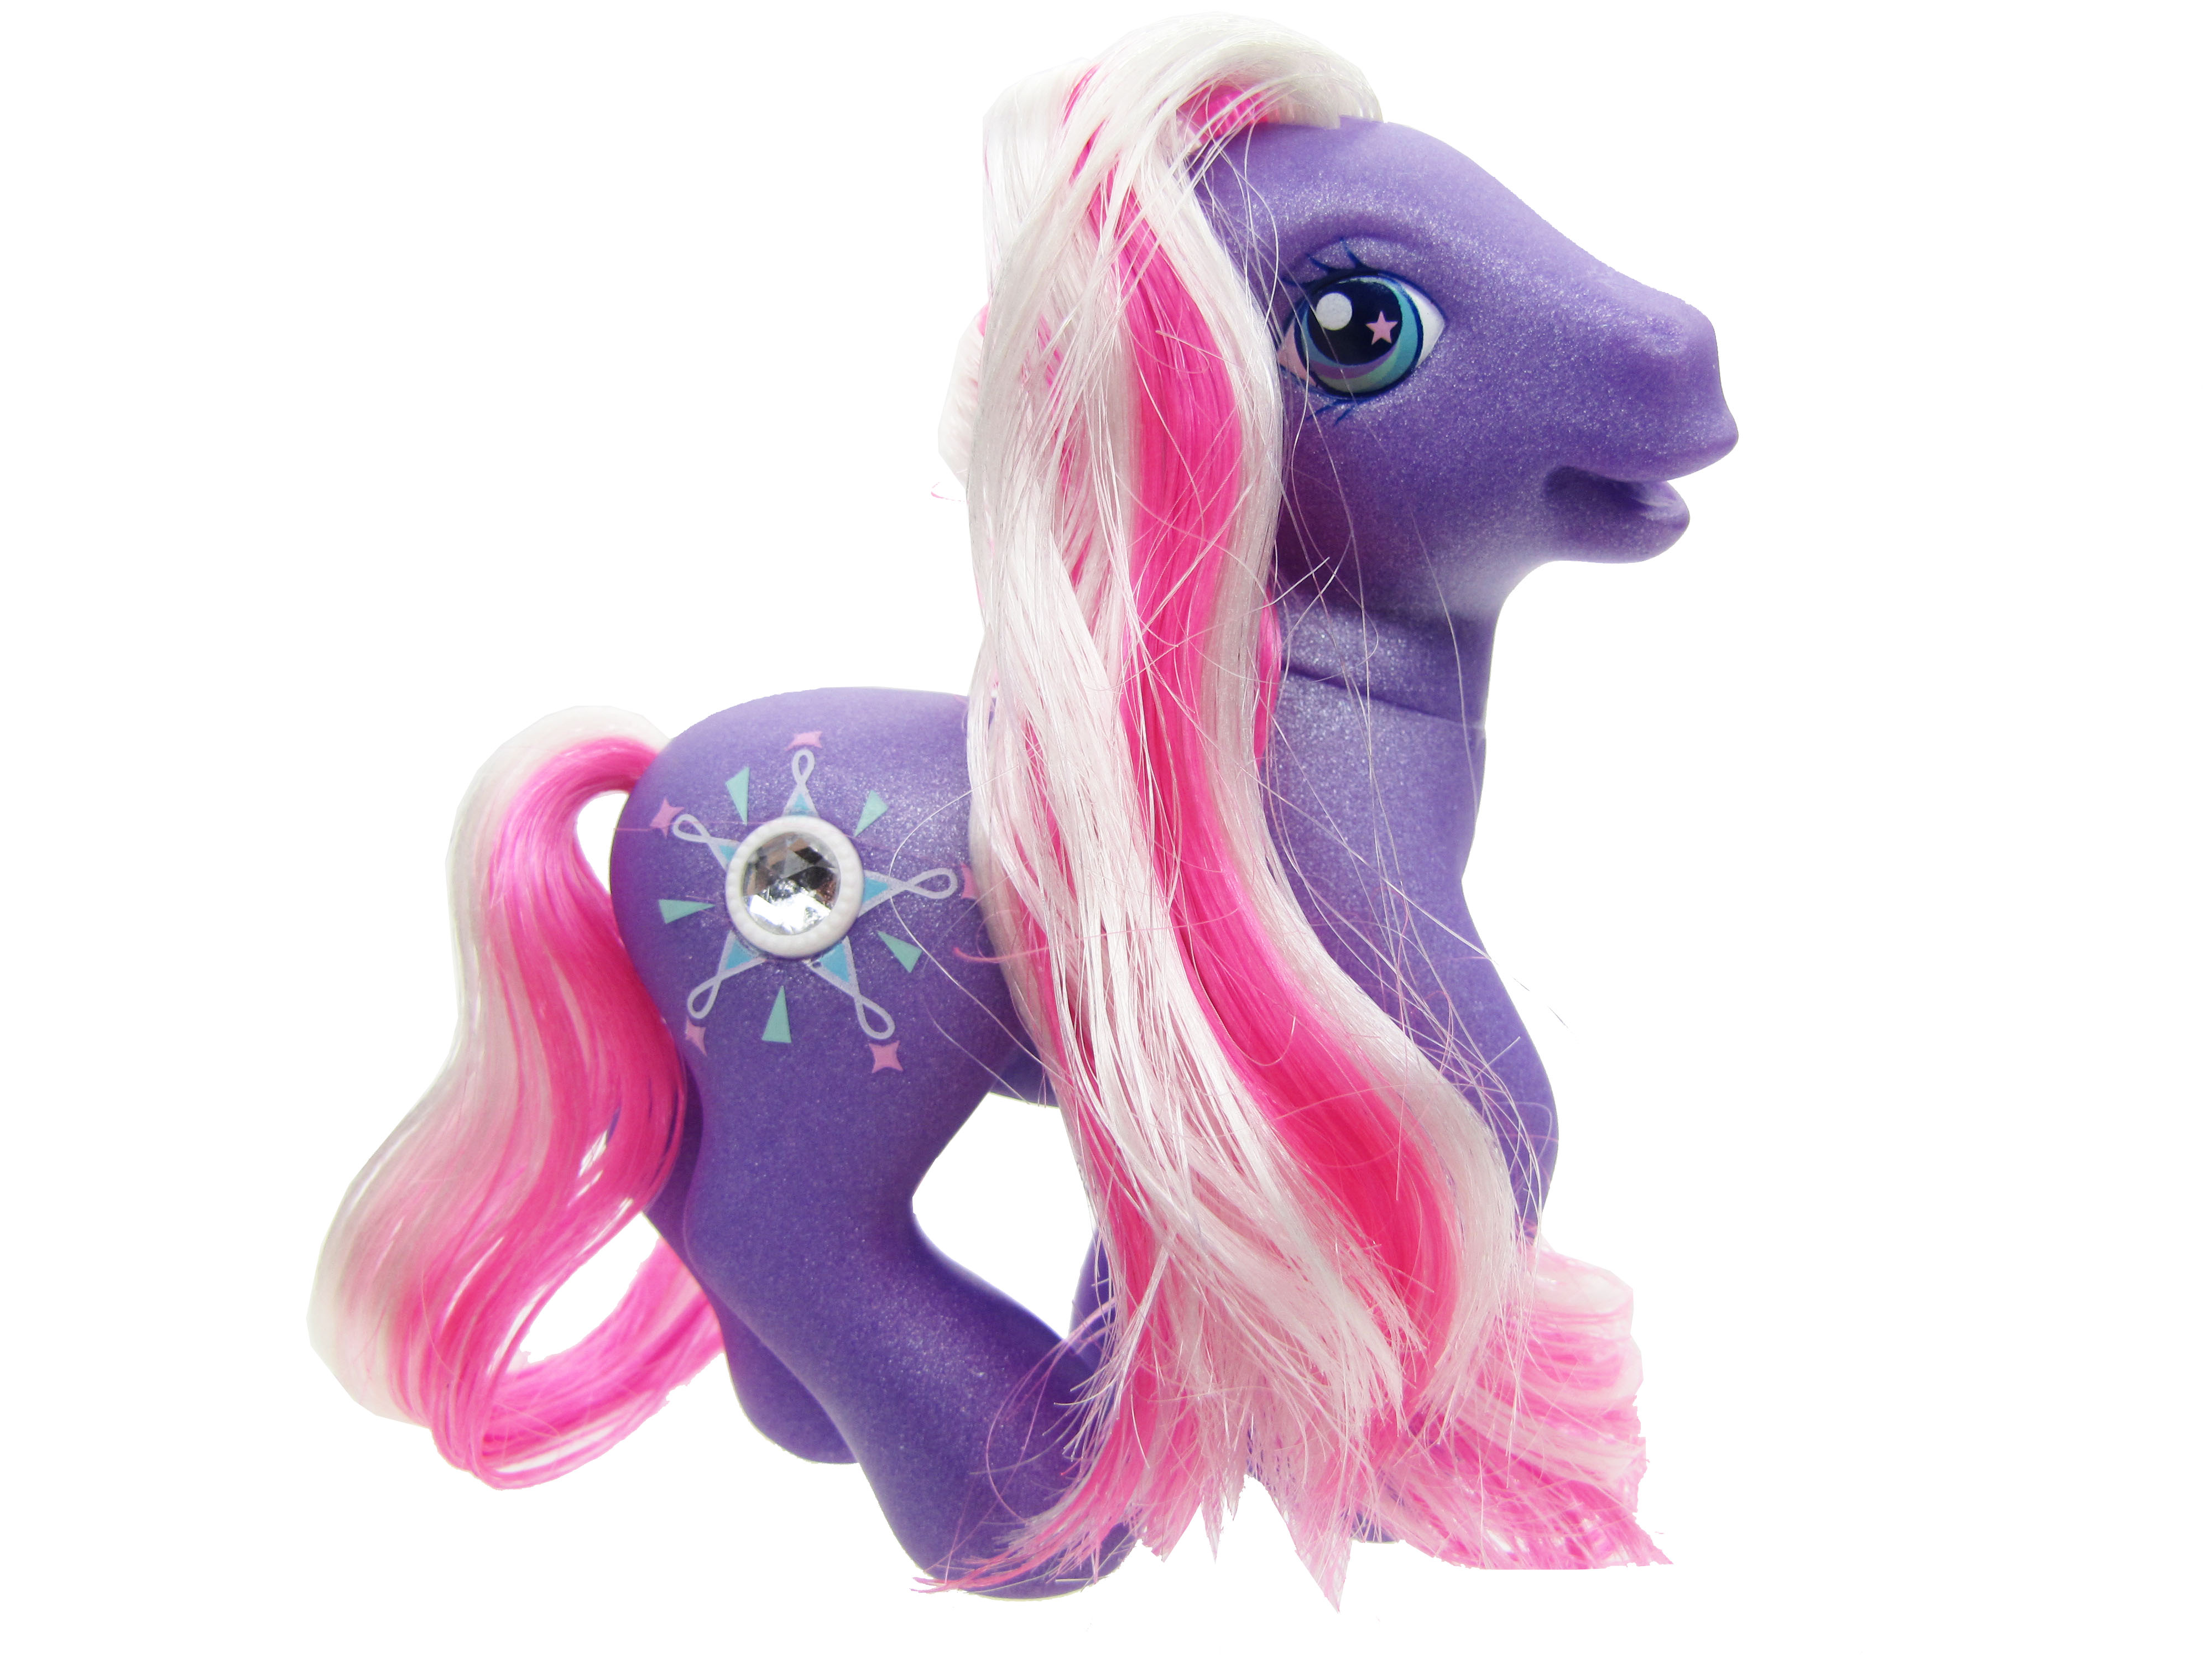 2003 My Little Pony Friendship Ball Jewel Pony Star Dasher